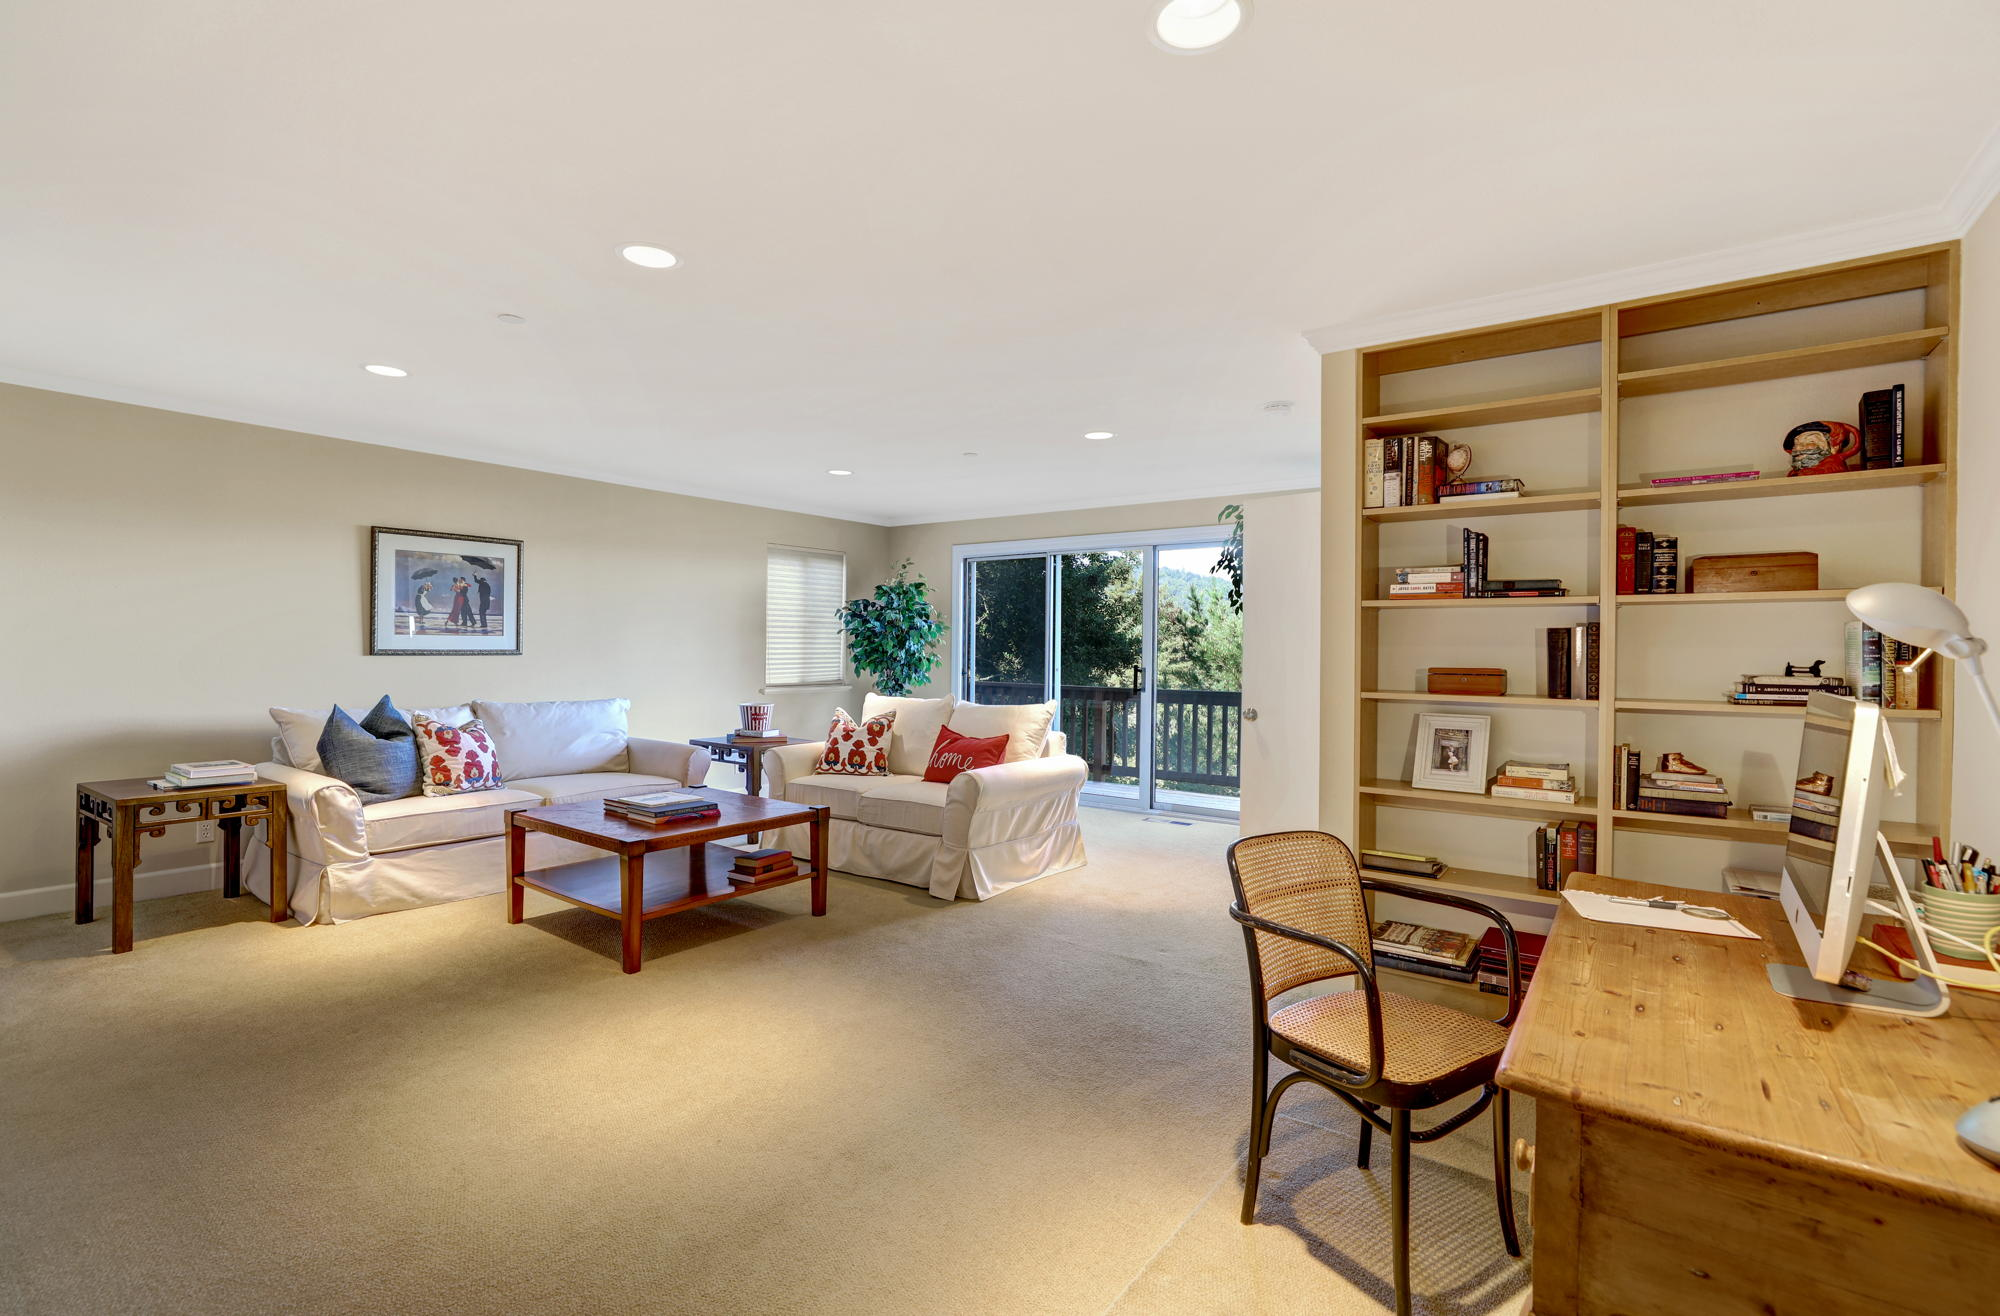 231 Marin Vista Larkspur #1 Realtor - 42 - Own Marin with Compass Real Estate.jpg